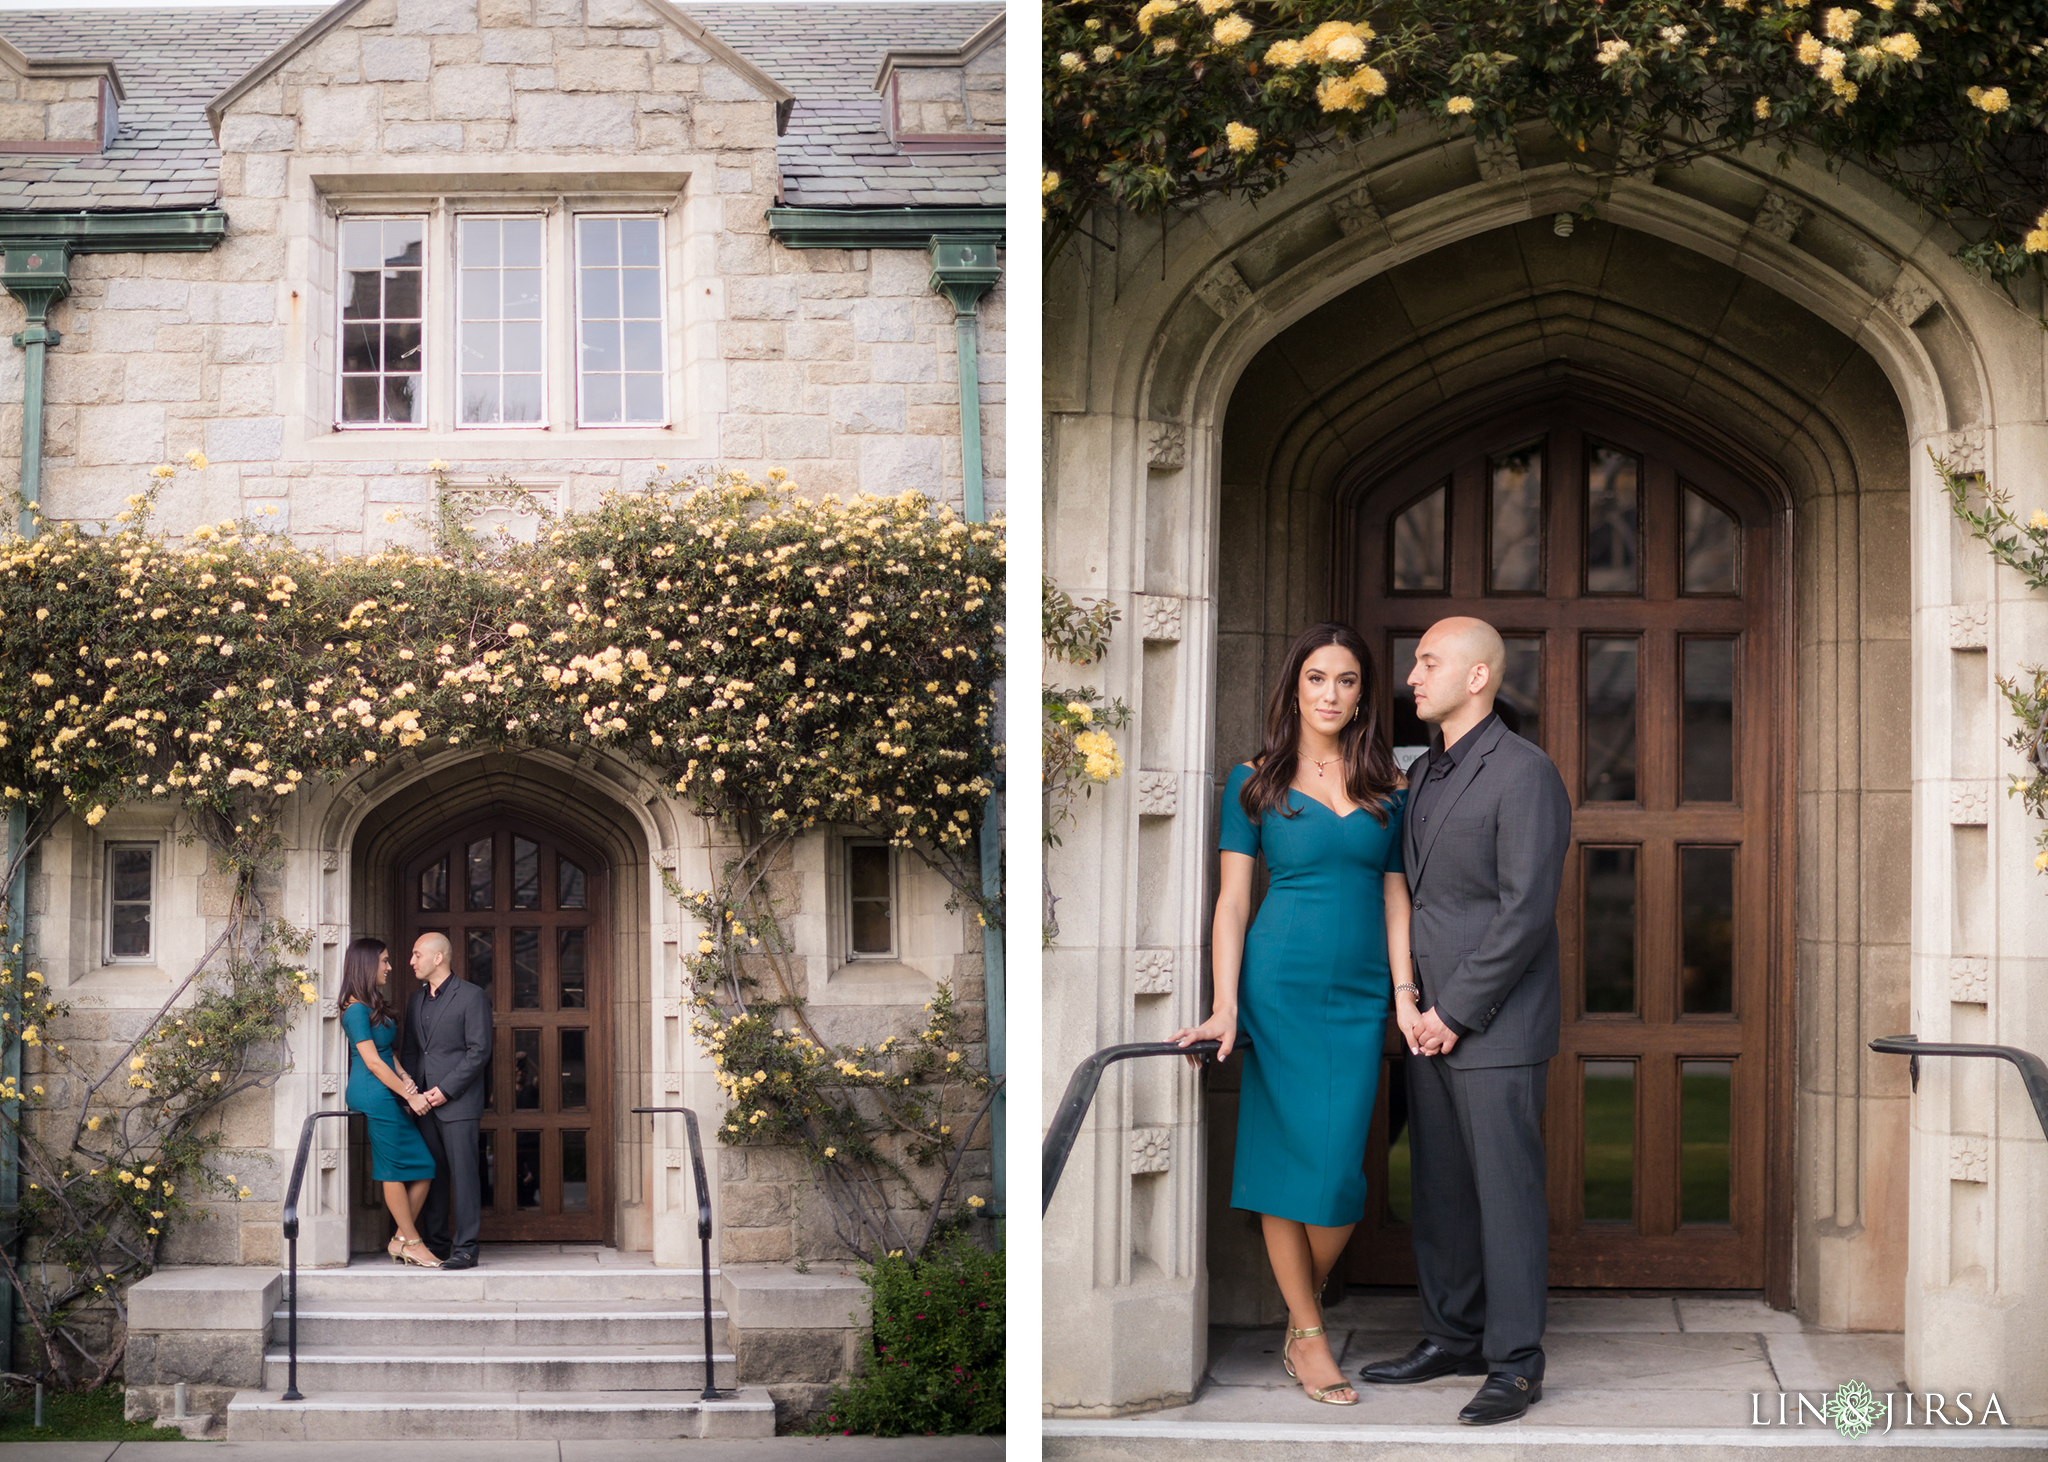 15-Los-angeles-arboretum-engagement-photography